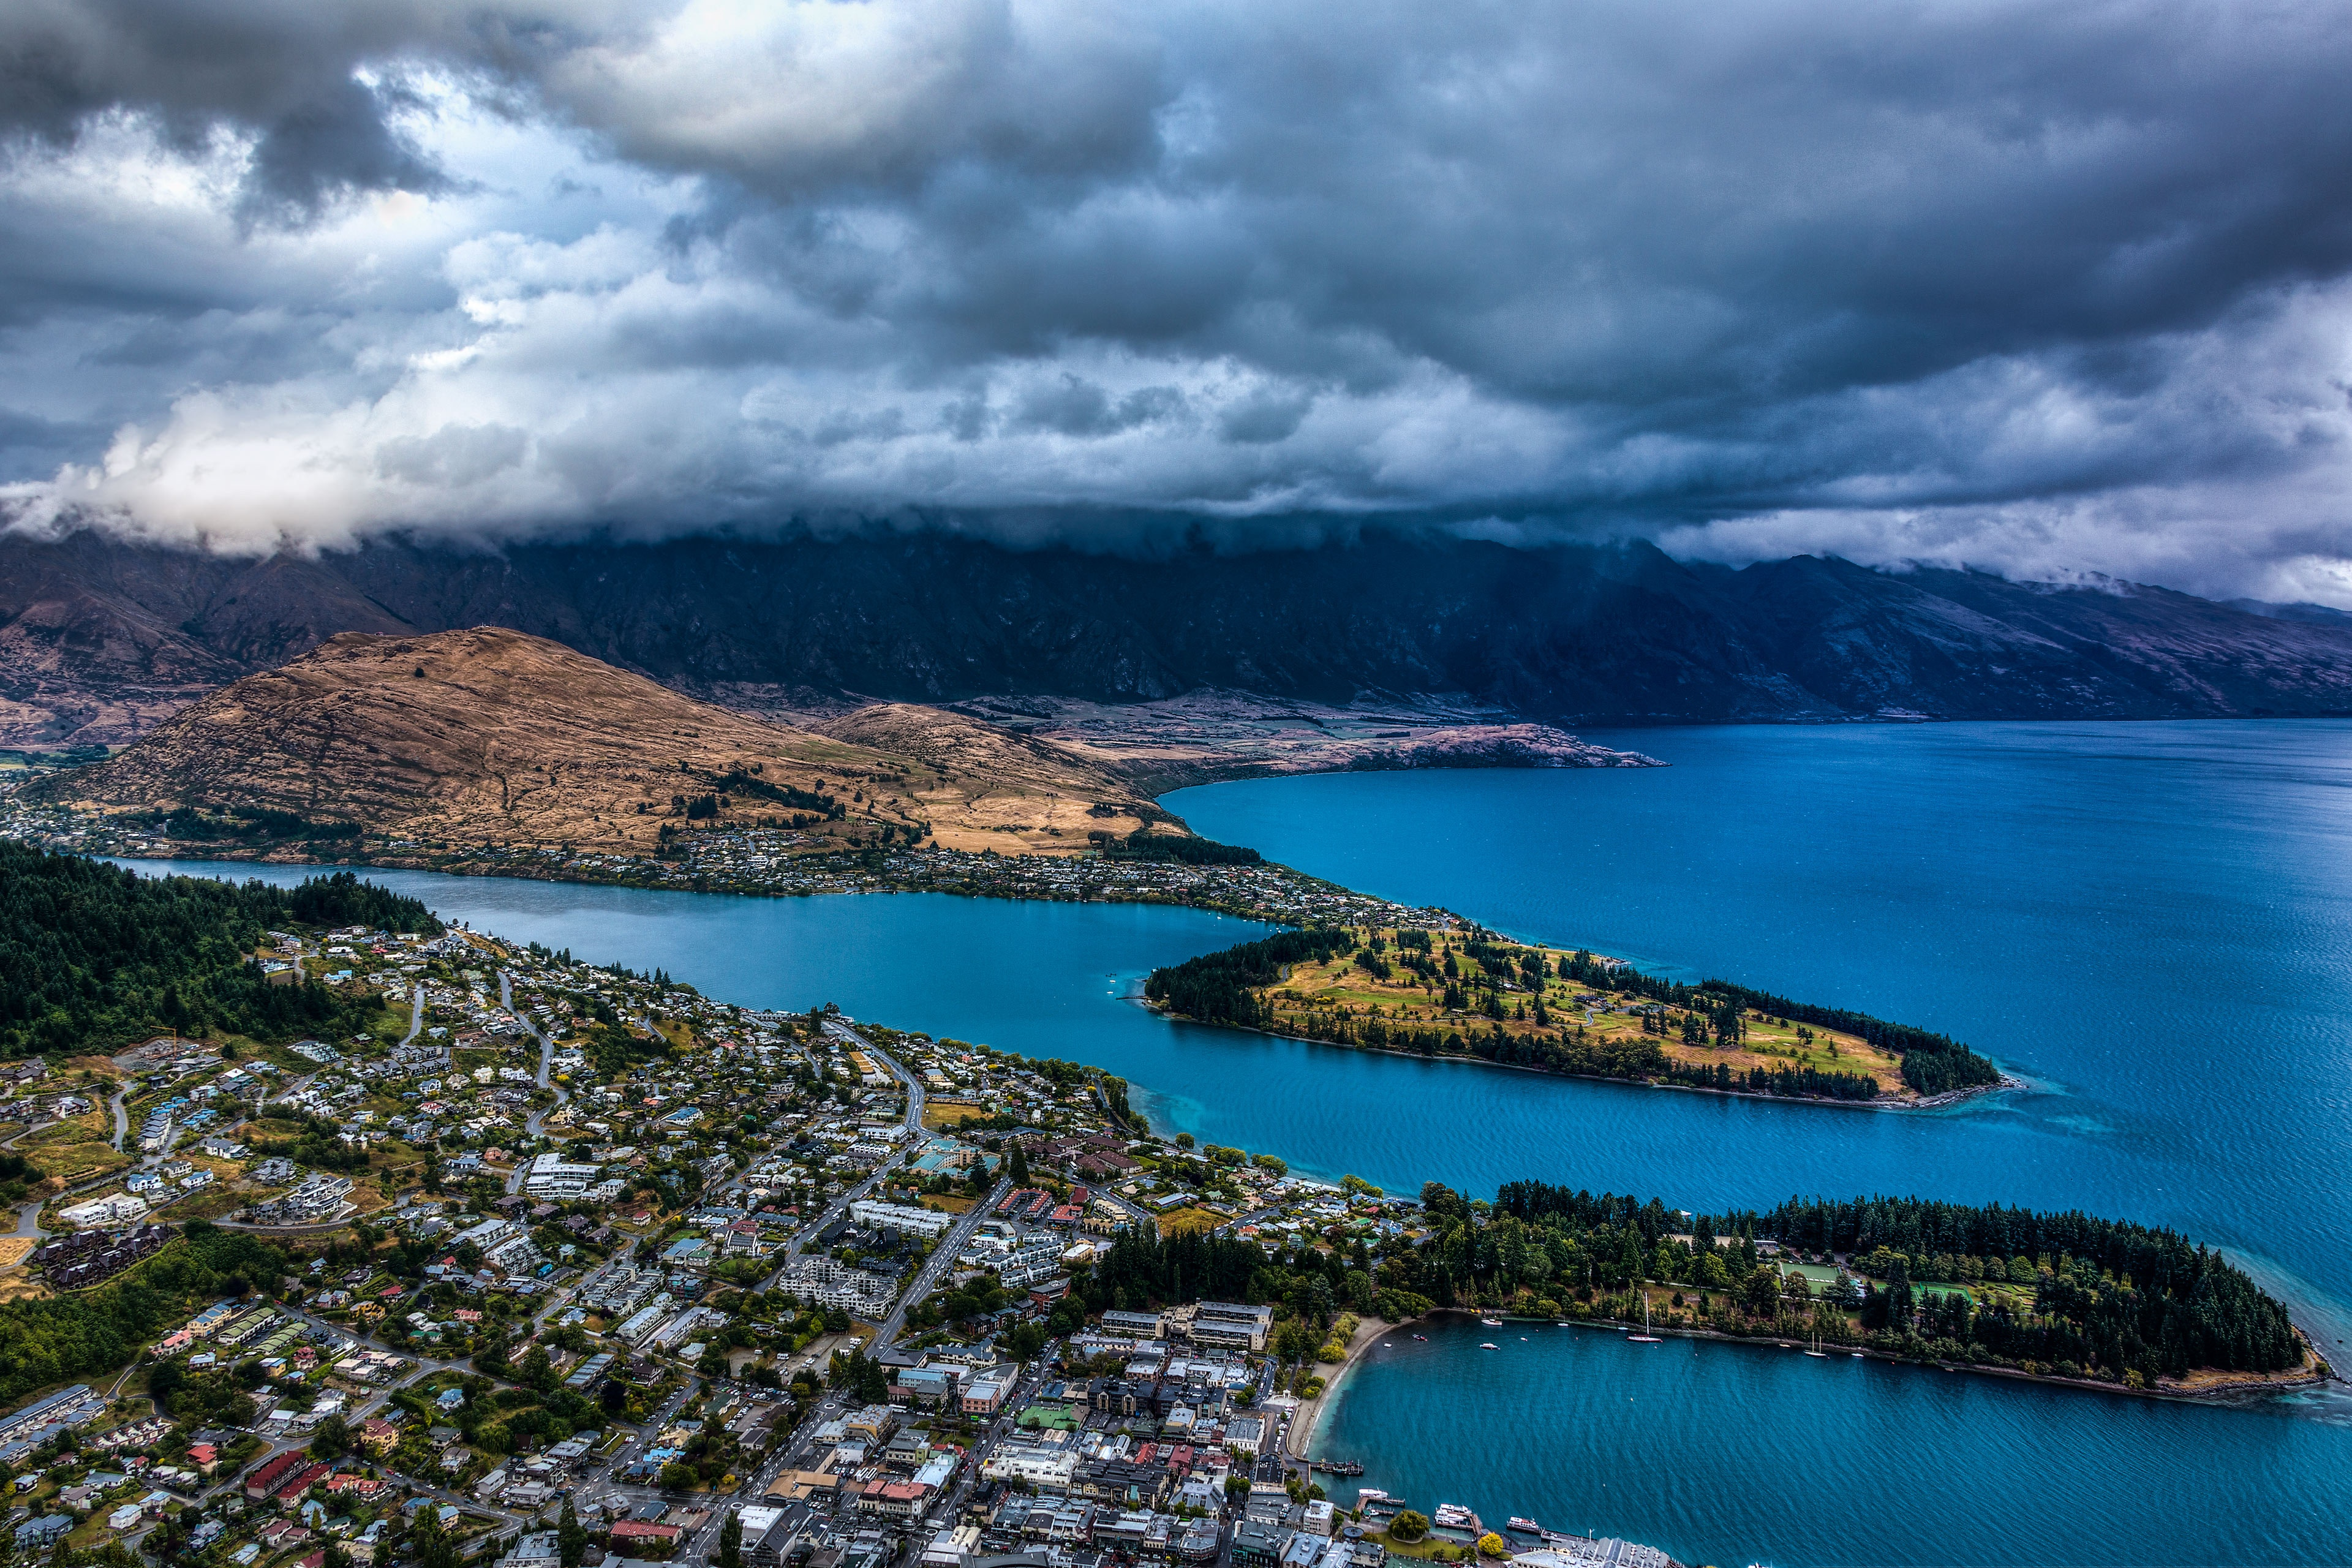 53260 download wallpaper Nature, Lake, View From Above, City, Clouds, New Zealand, Mountains screensavers and pictures for free